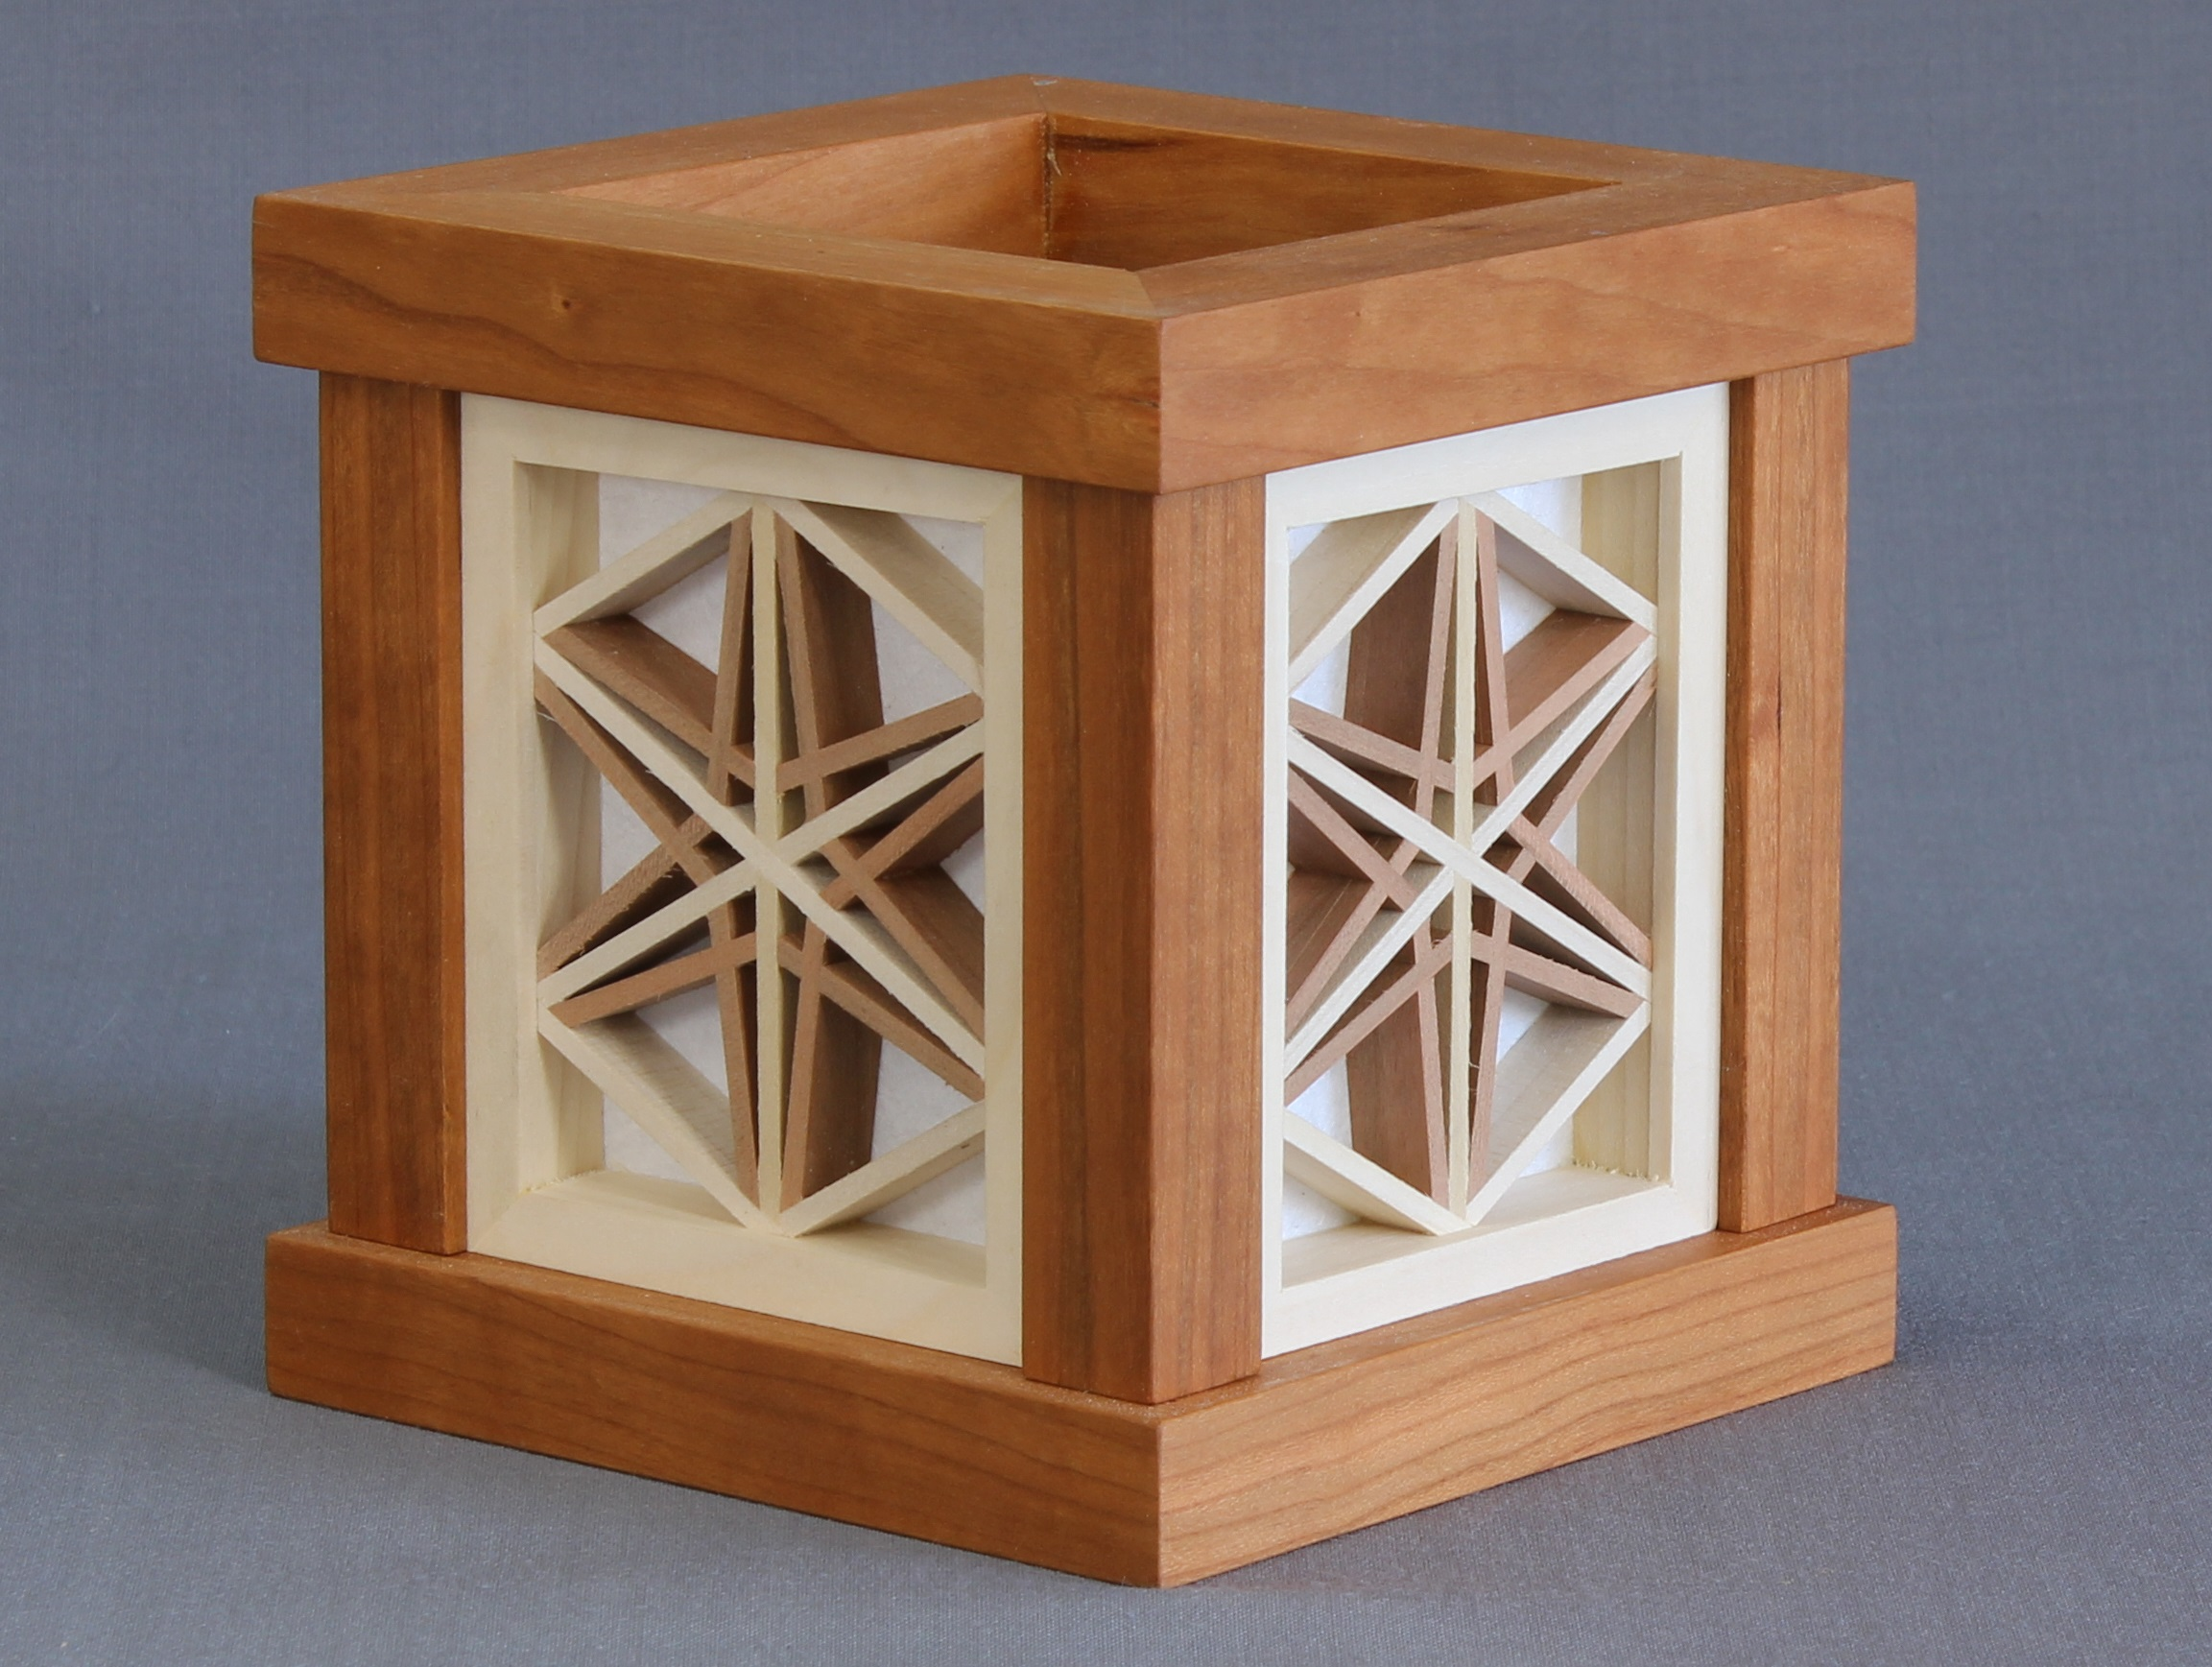 Andon Model #7   225.00 USD  5 ½ x 5 5/16 x 5 5/16 inches  Shown in Walnut, made to order available in any domestic species.  Japanese shoji paper over wood.  Supplied with a led light fixture manufactured from UL listed parts.